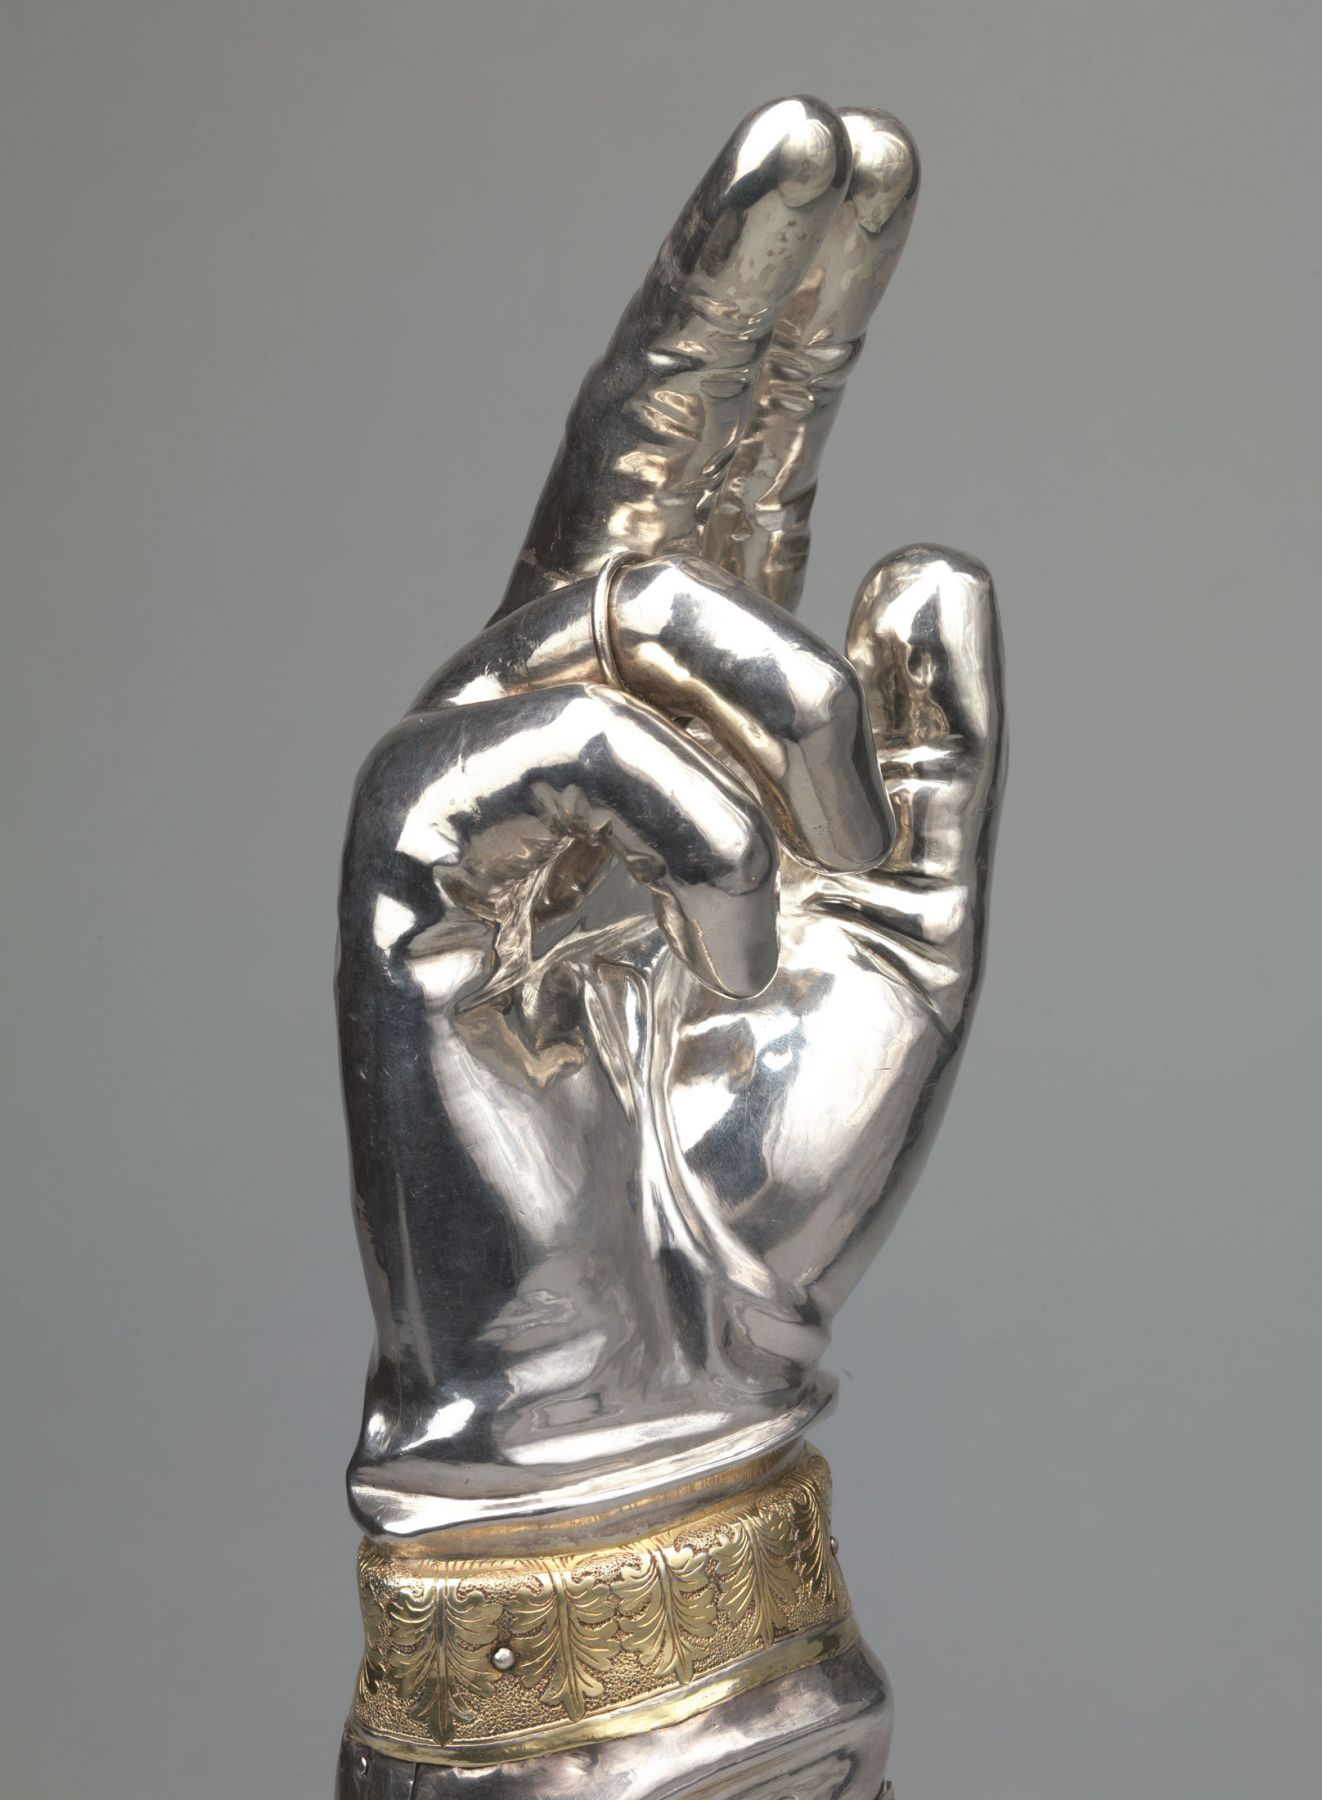 Jean Mamerot(acive Auxerre, 1535-after 1568), An arm reliquary of a bishop saint (detail)